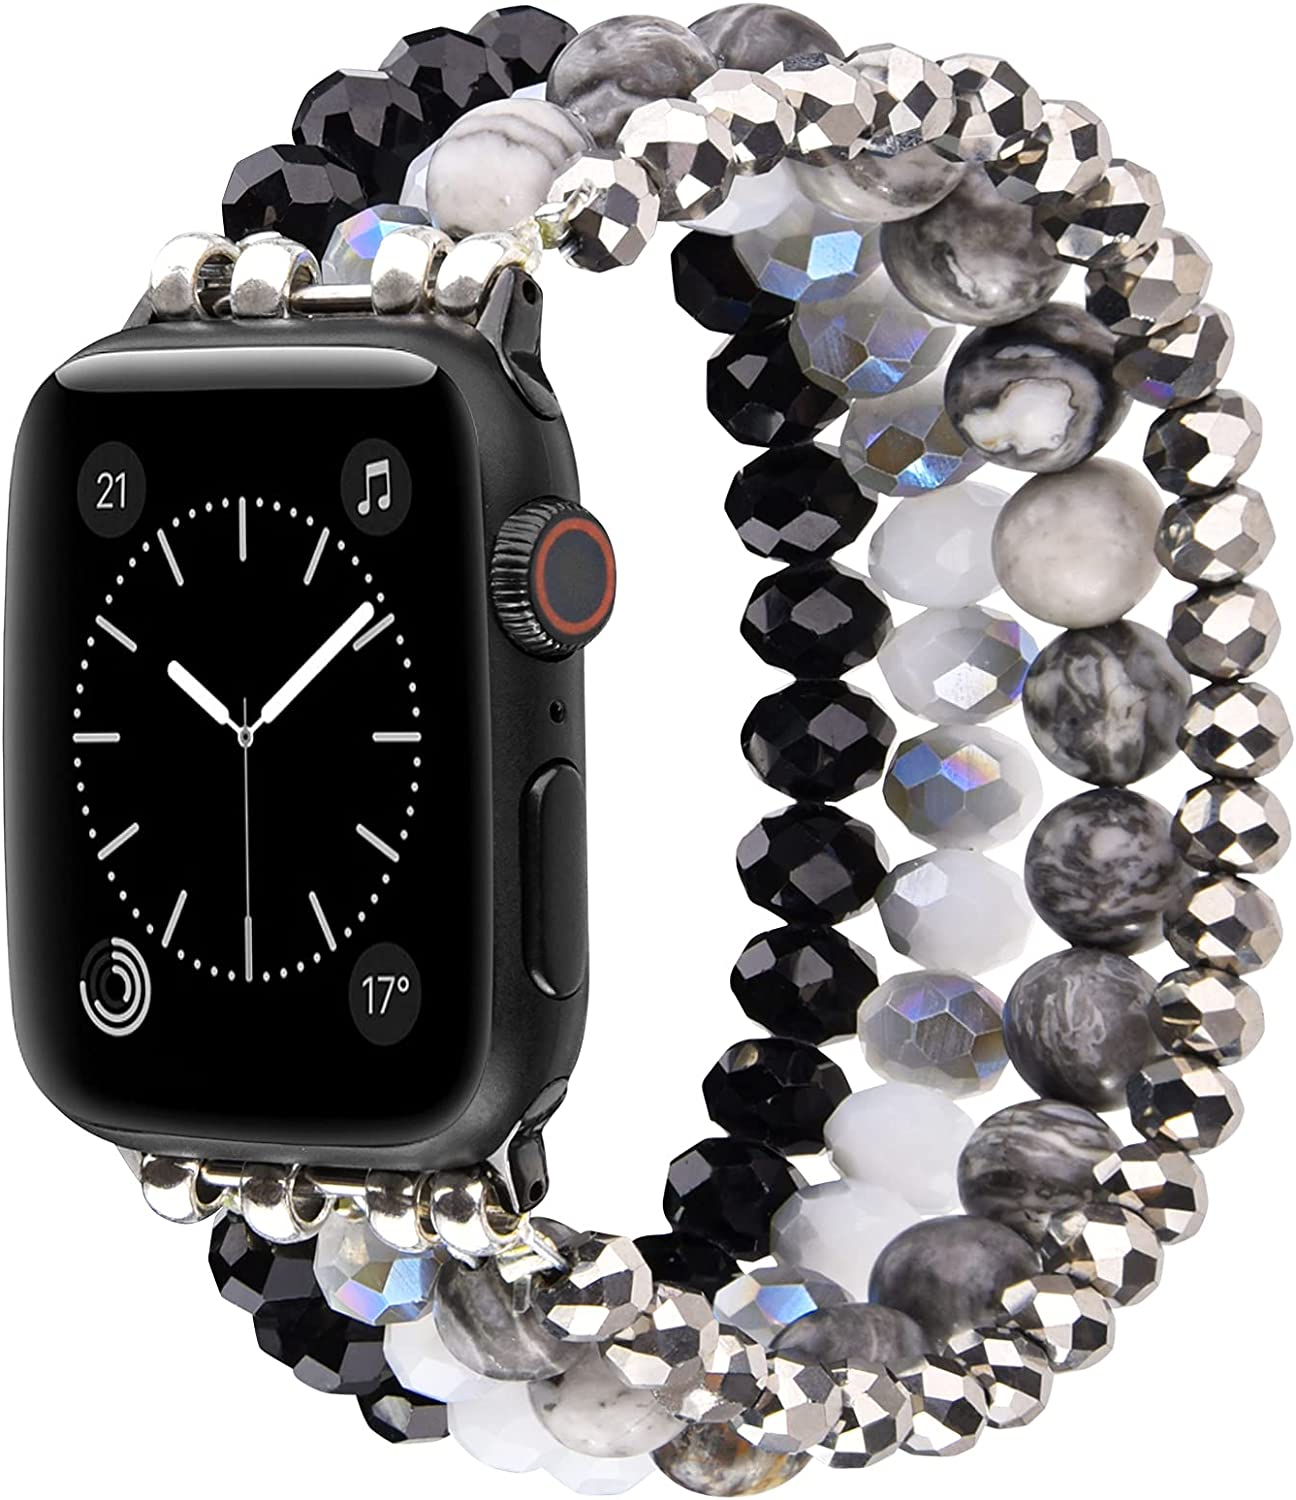 Glittering Beaded Compatible with 40mm 44mm Apple Watch SE Series 6/5/4 Bands, iWatch Series 3/2/1 38mm 42mm Bracelets, CAGOS iPhone Watch Band for Women